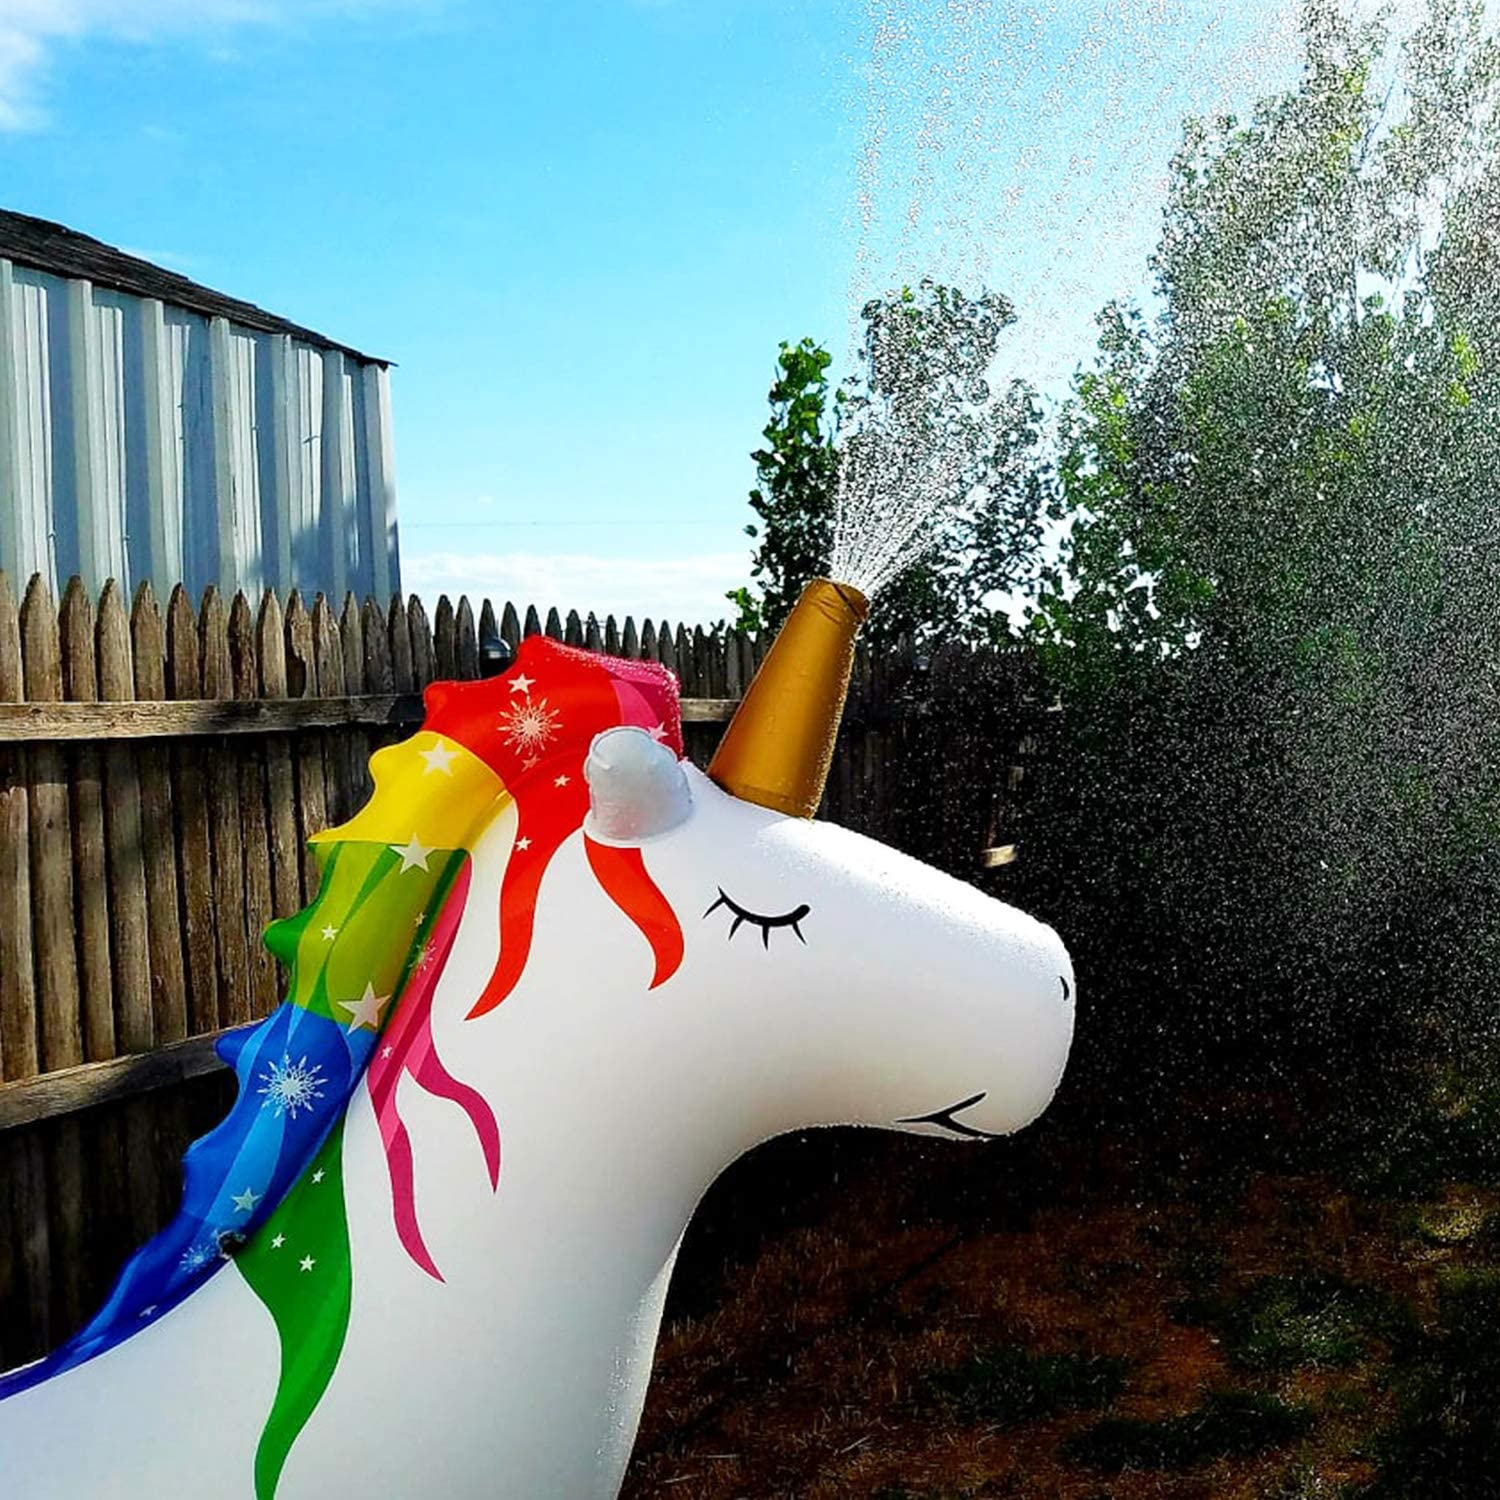 Amazon.com: XGEAR - Aspersores inflables de unicornio para ...